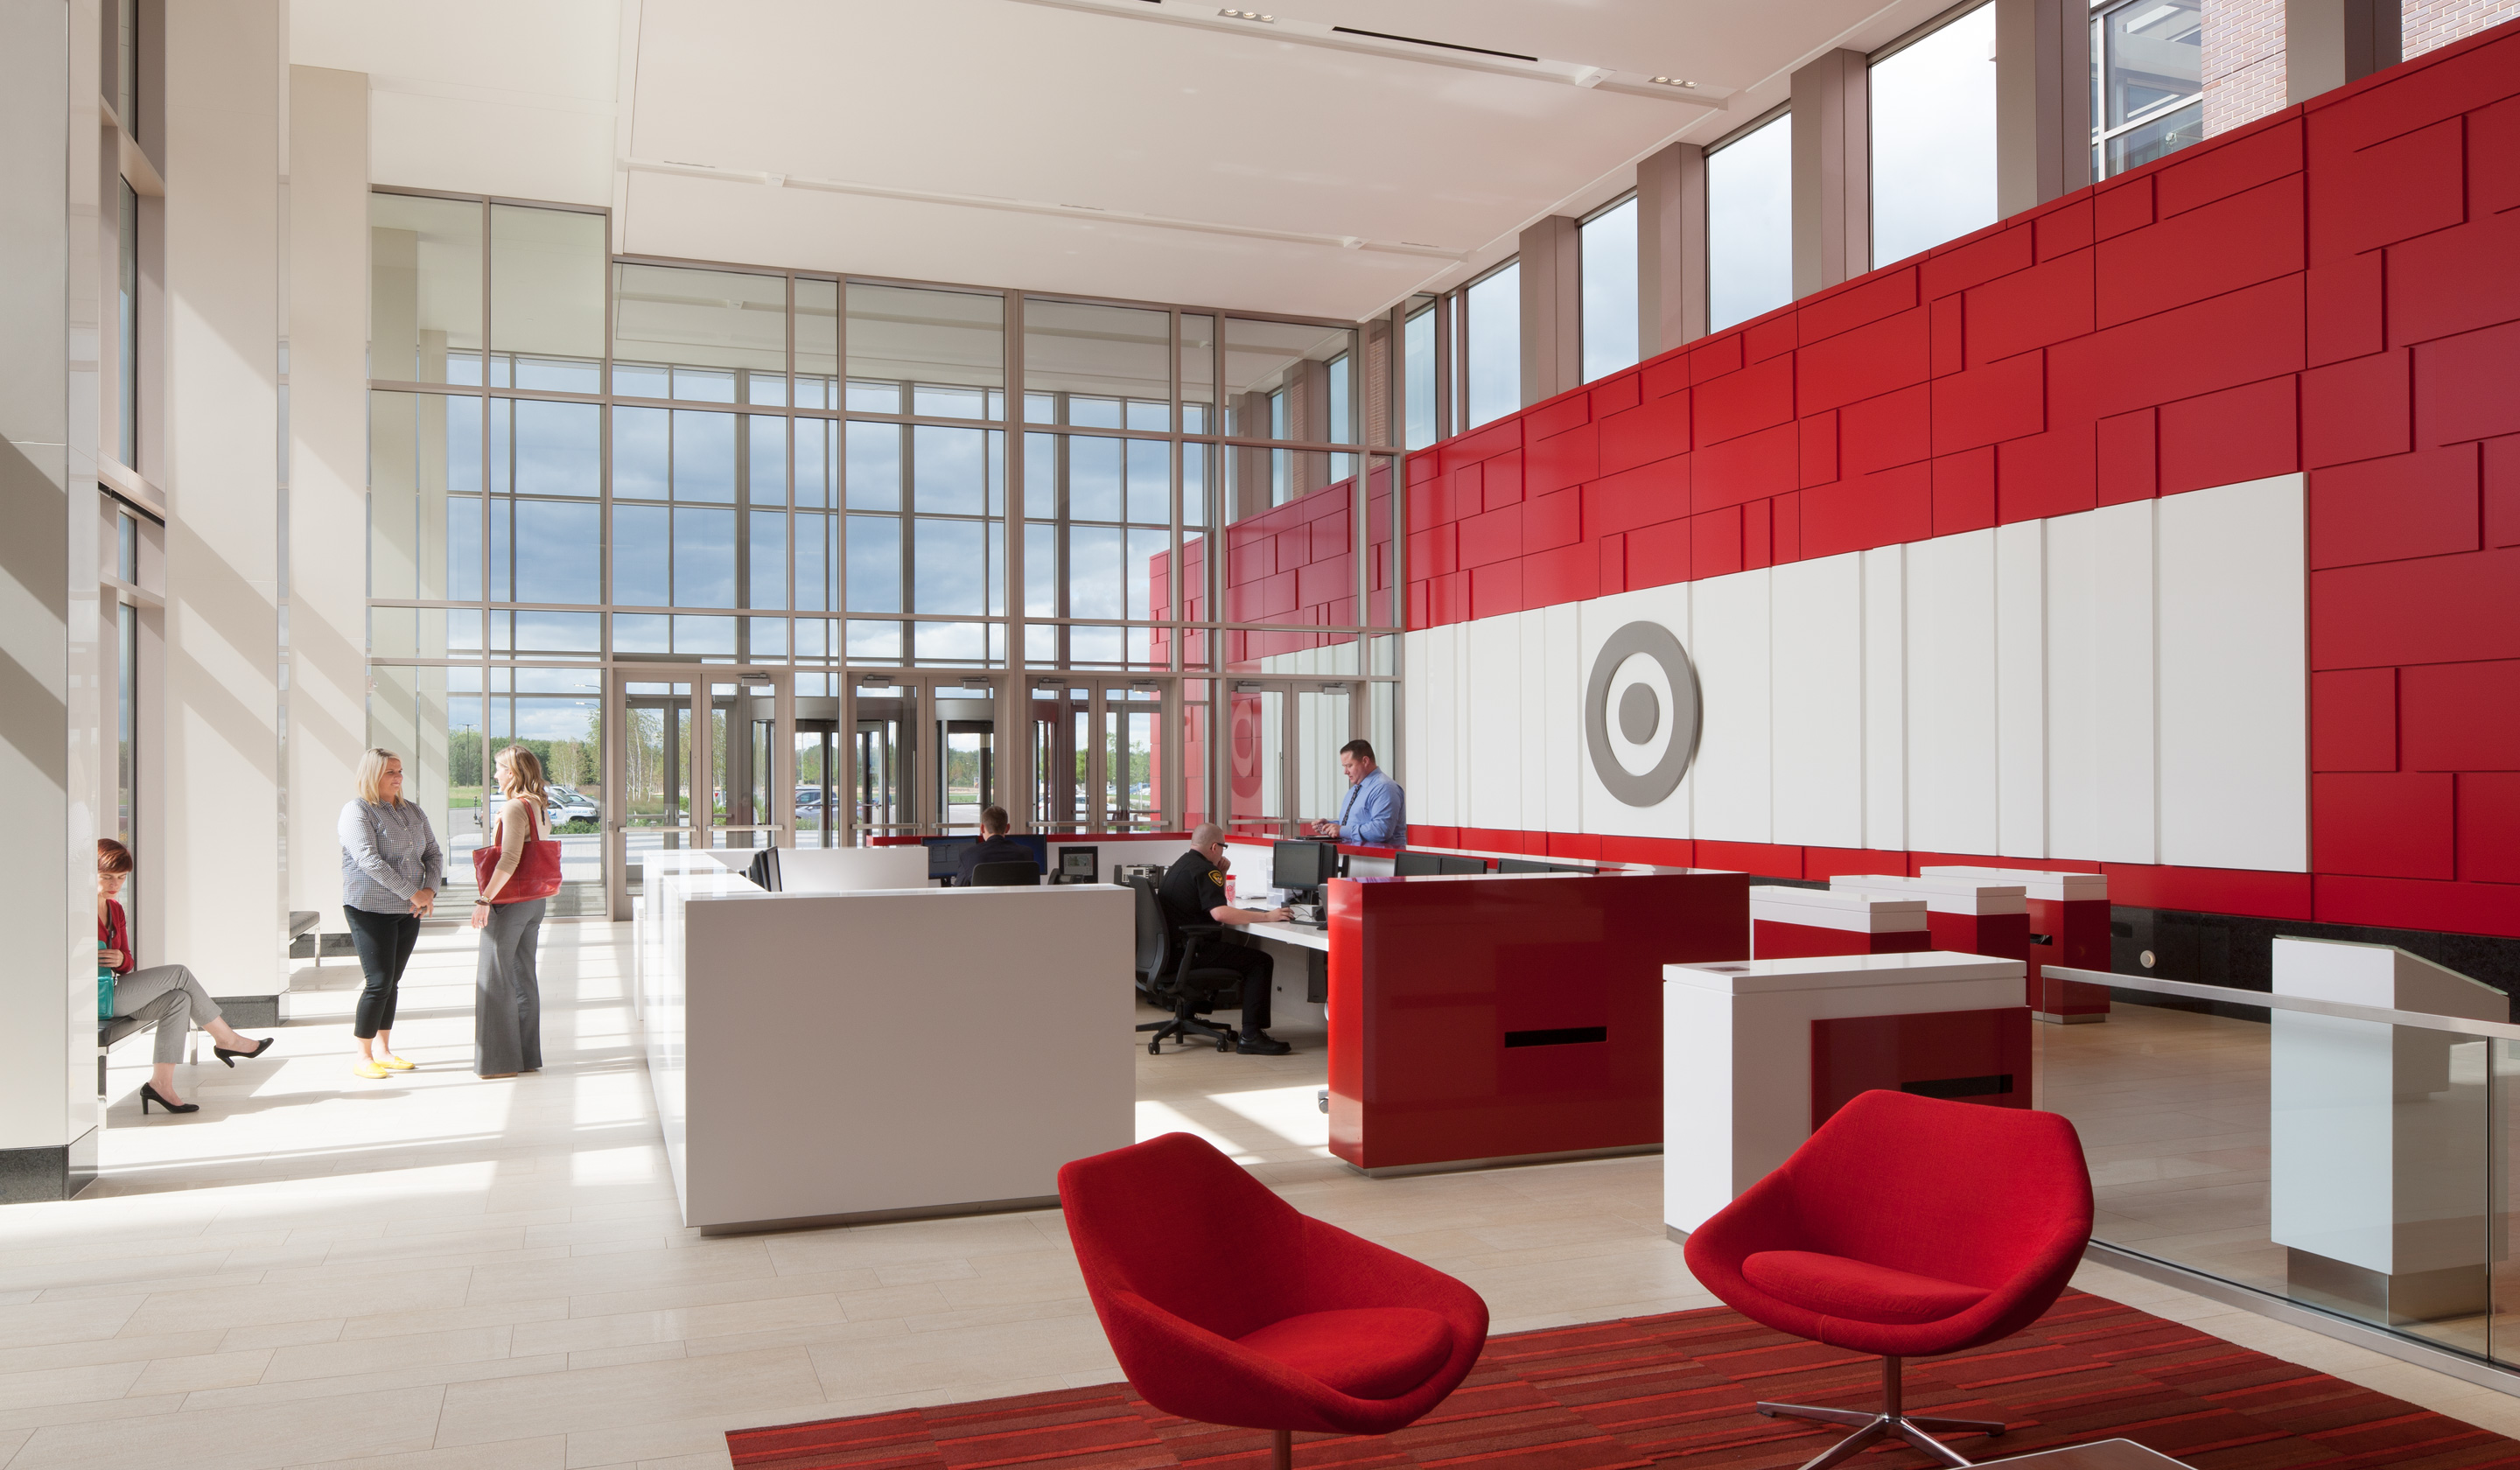 target office ecza solinf co rh ecza solinf co target interior design & contracting co target store interior design